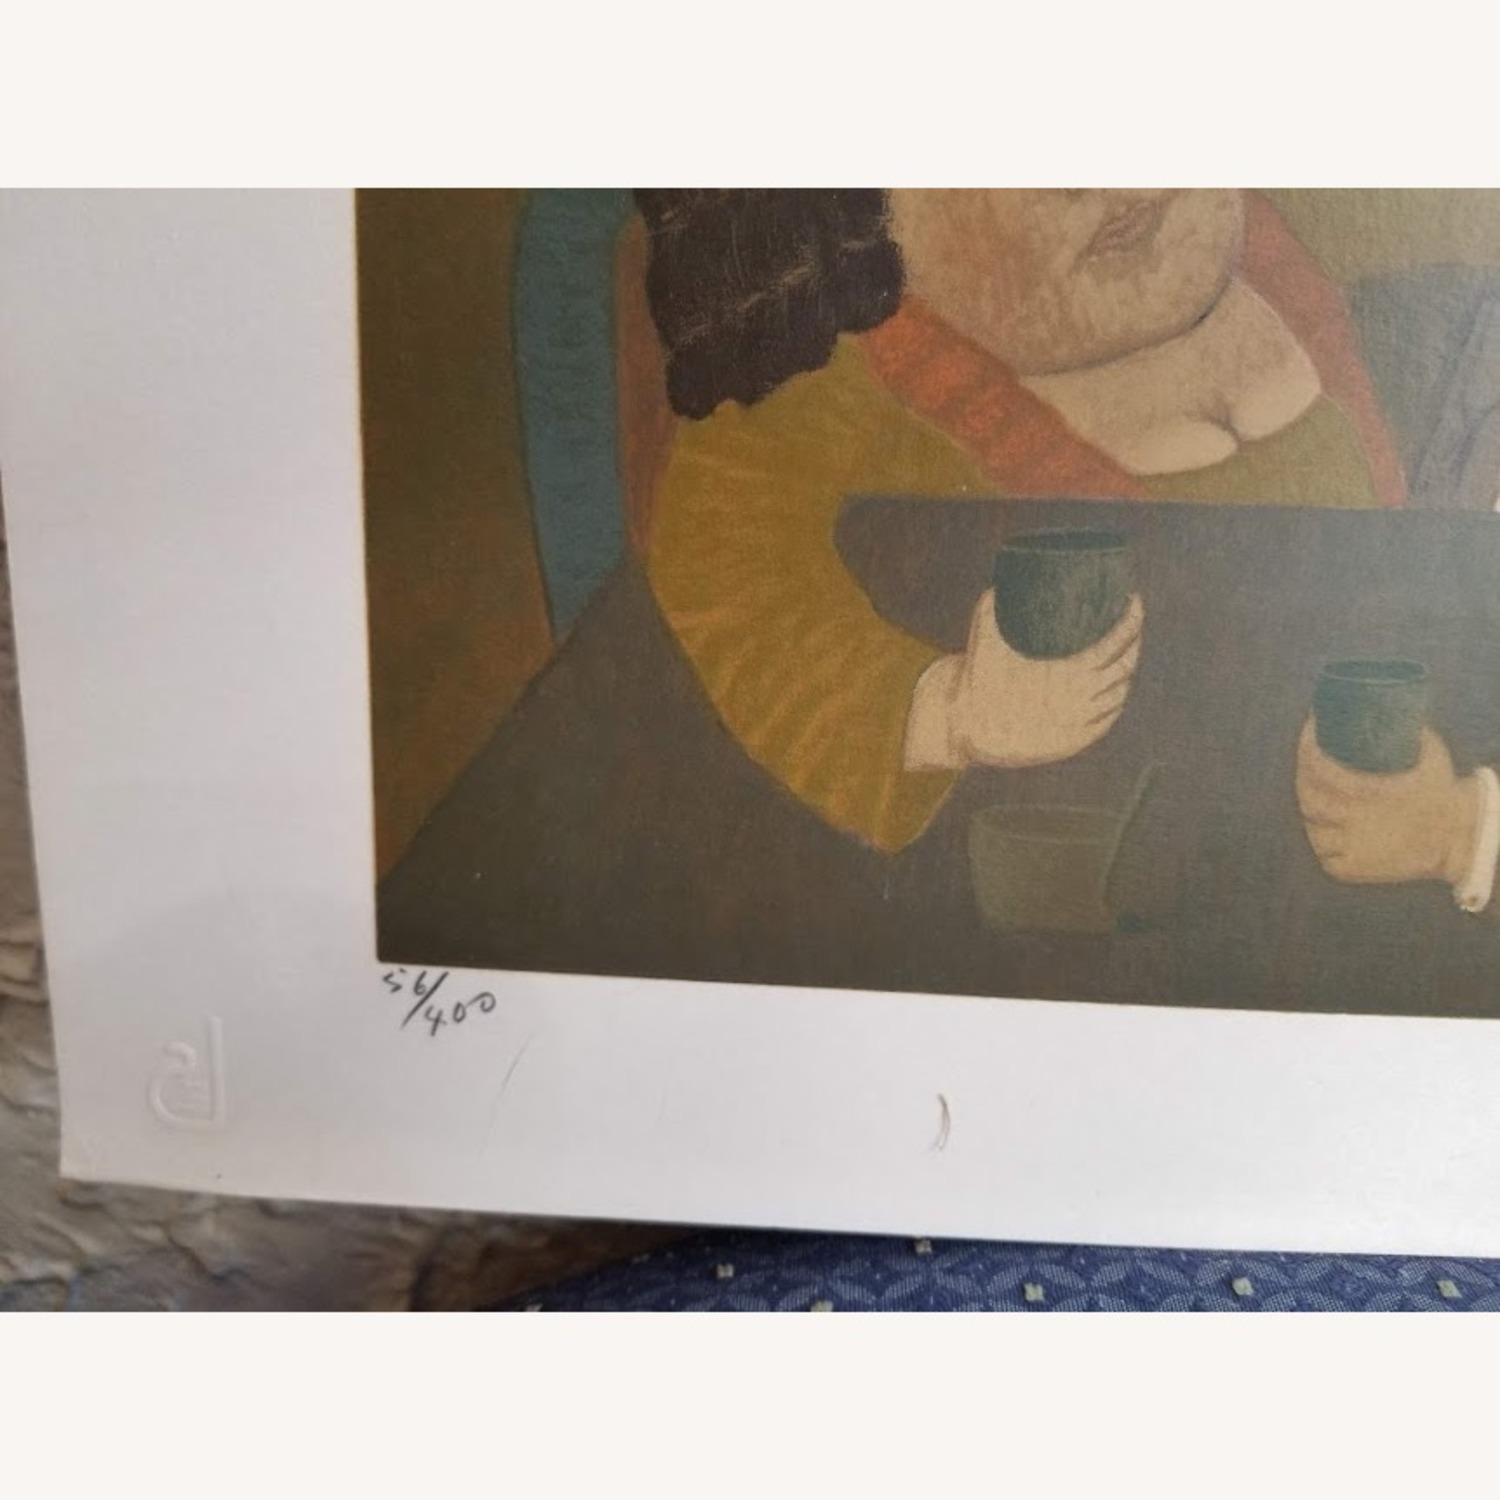 Signed Numbered Colombian Art Print by Antonio Samudio - image-10